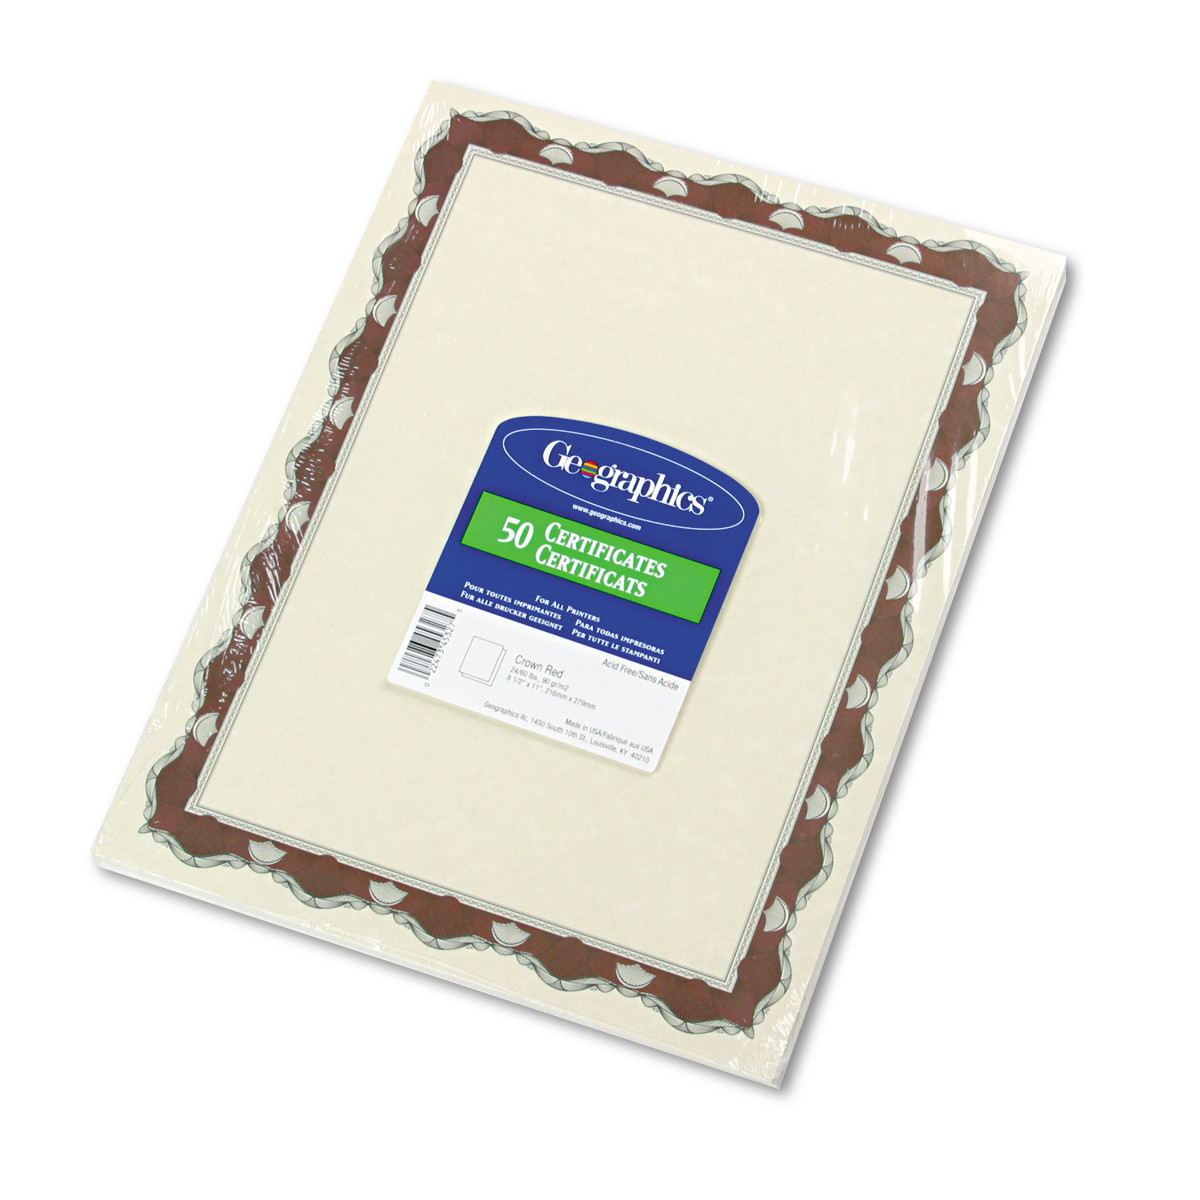 Geographics Parchment Paper Certificates, 8-1/2 x 11, Red Crown Border, 50/Pack